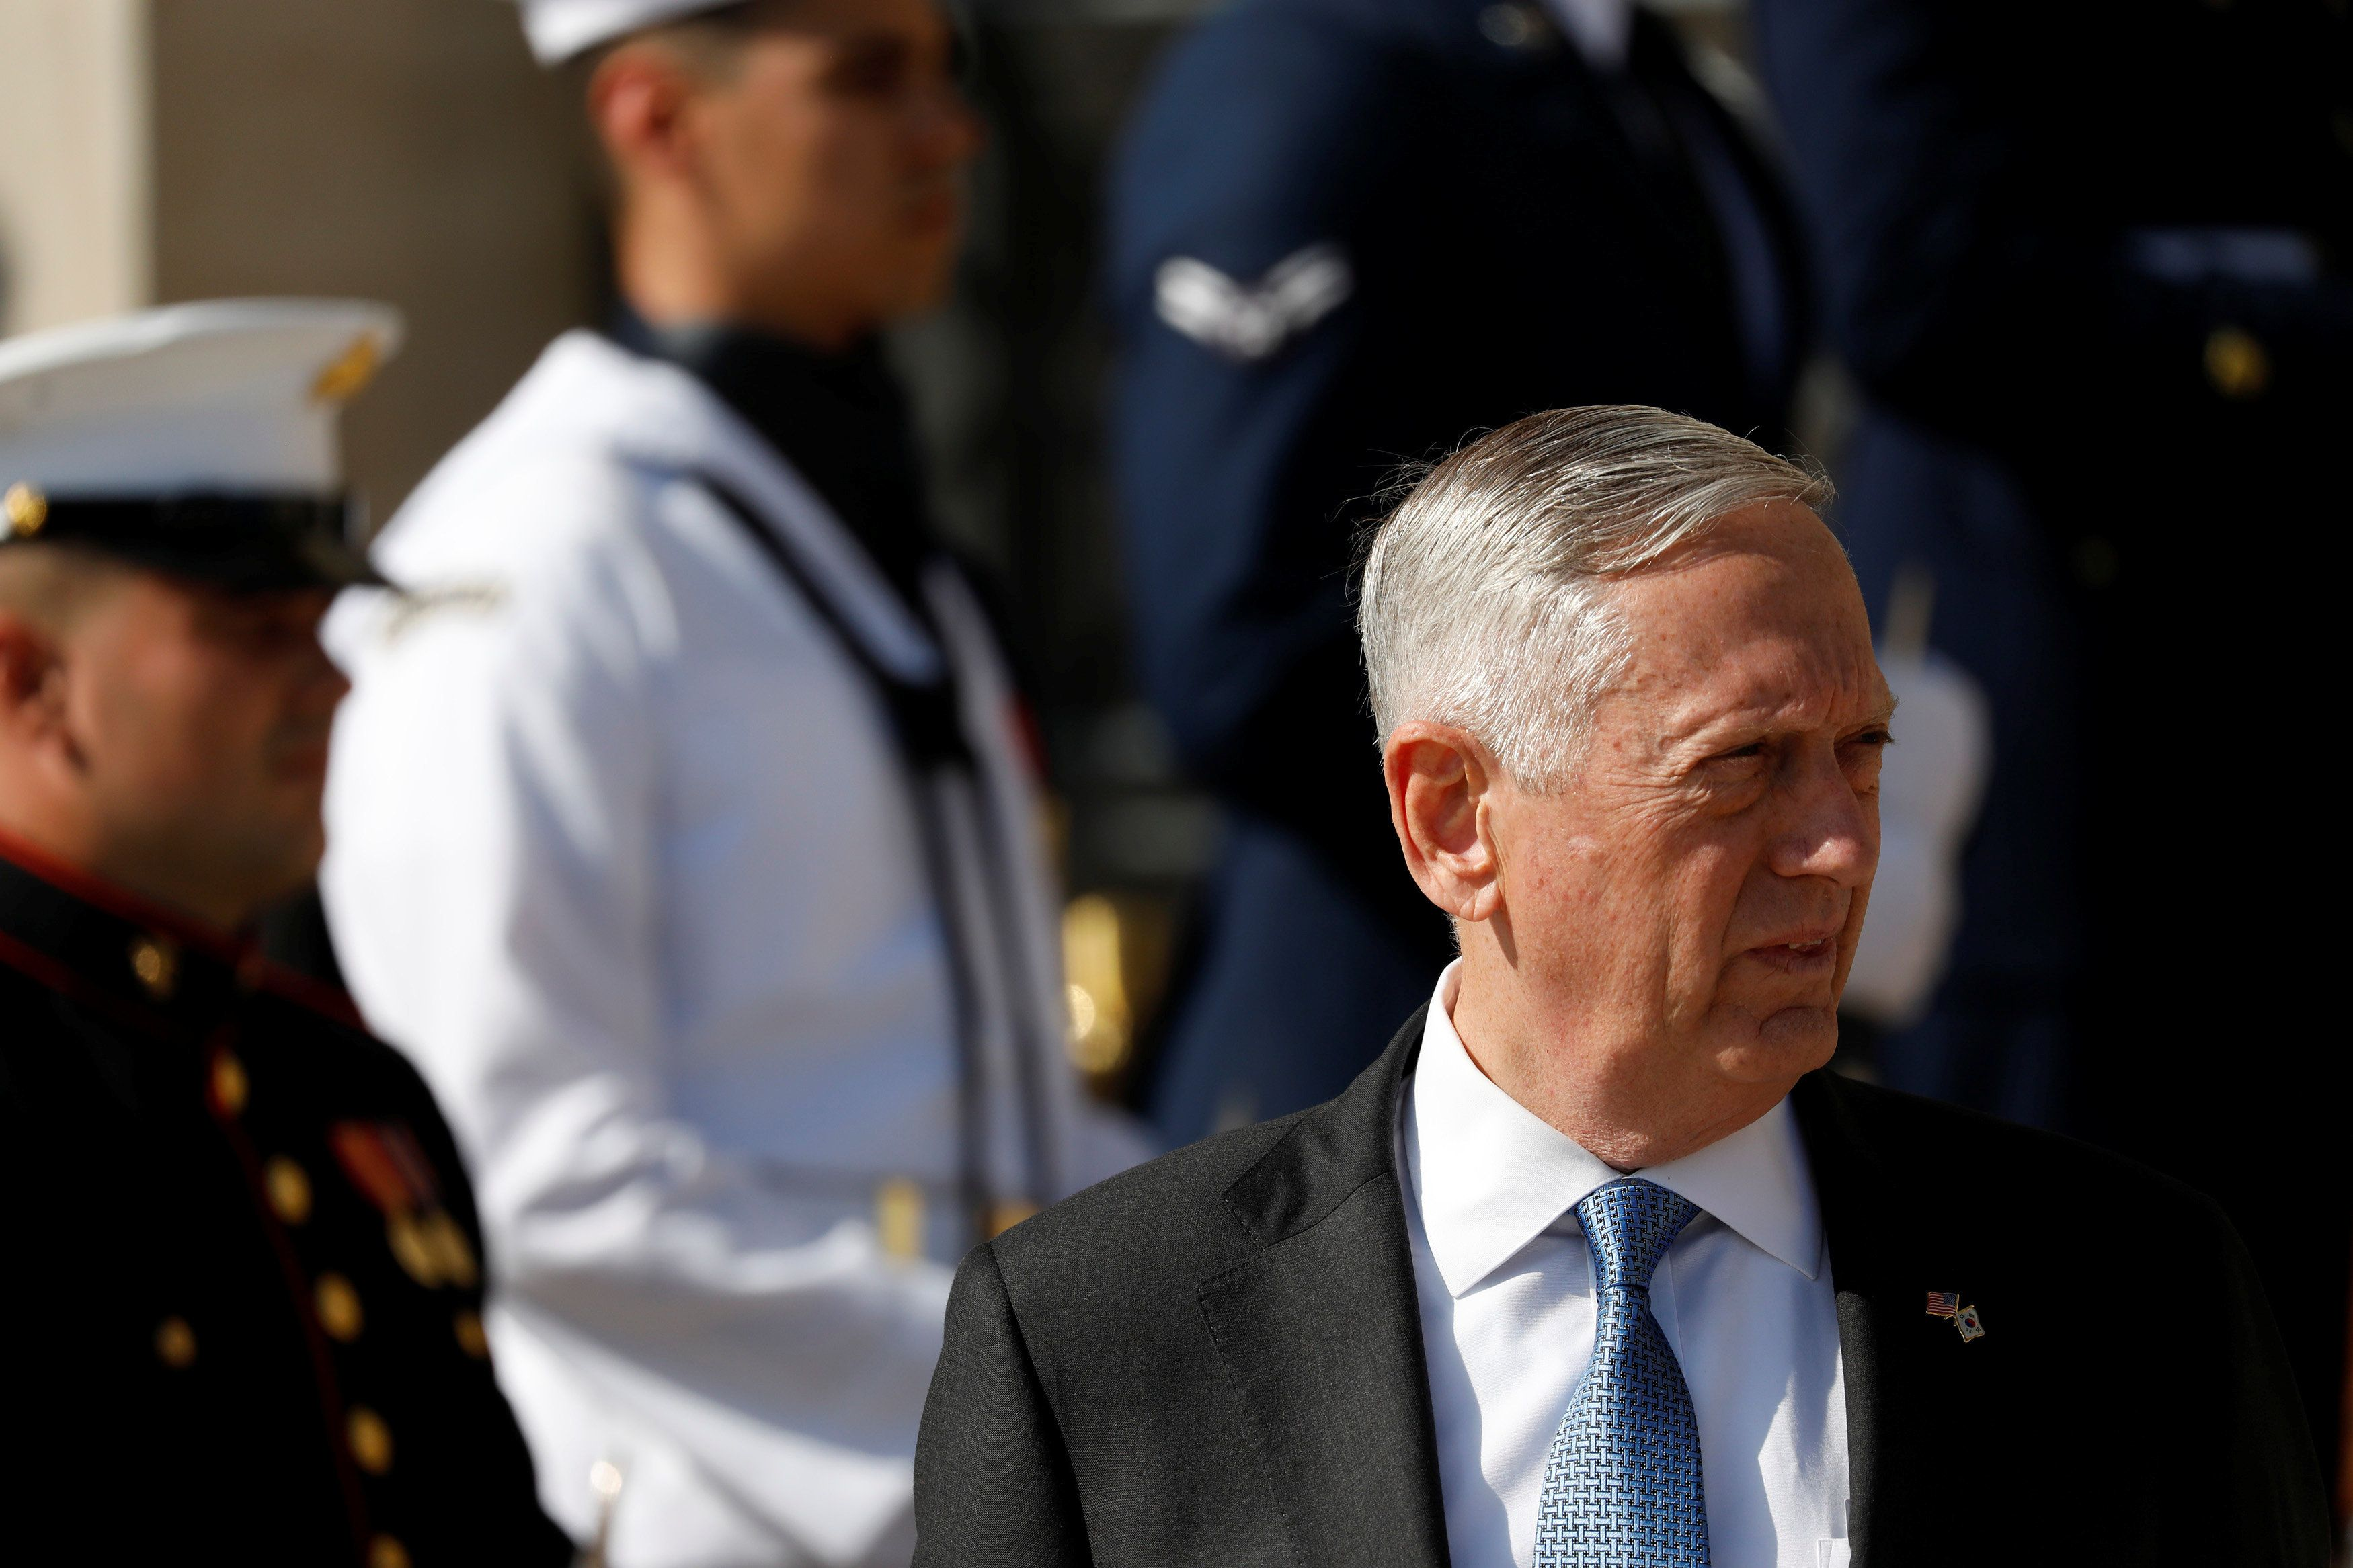 U.S. Defense Secretary James Mattis awaits the arrival of South Korean Defense Minister Song Young-Moo prior to a honor cordon at the Pentagon in Arlington, Virginia, U.S., August 30, 2017. REUTERS/Aaron P. Bernstein